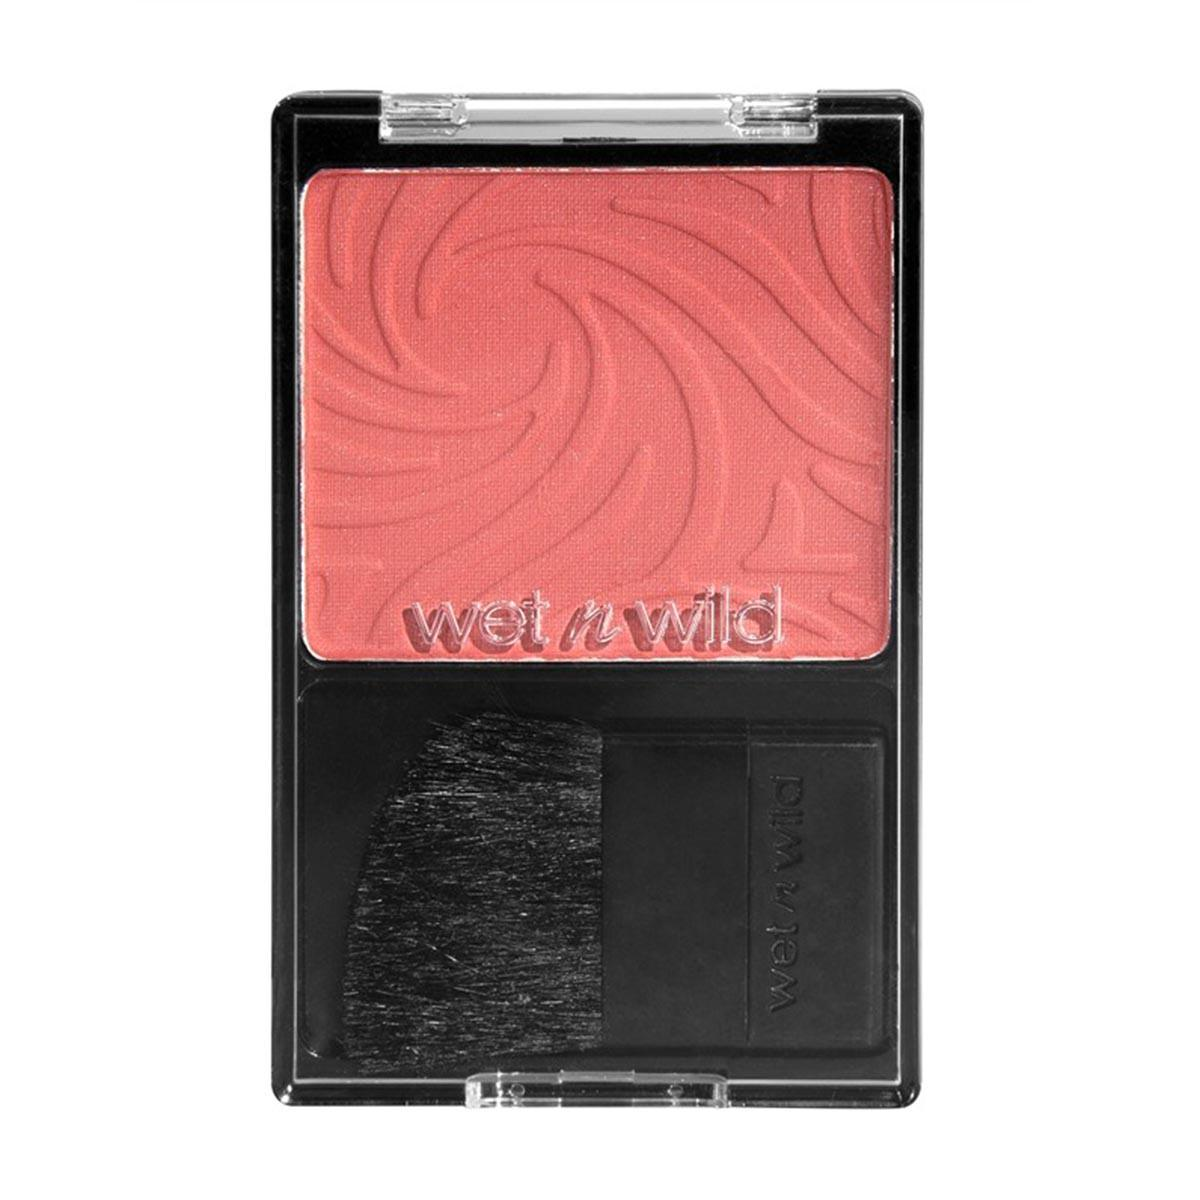 Wet n wild Coloricon Blusher Mellow Wine